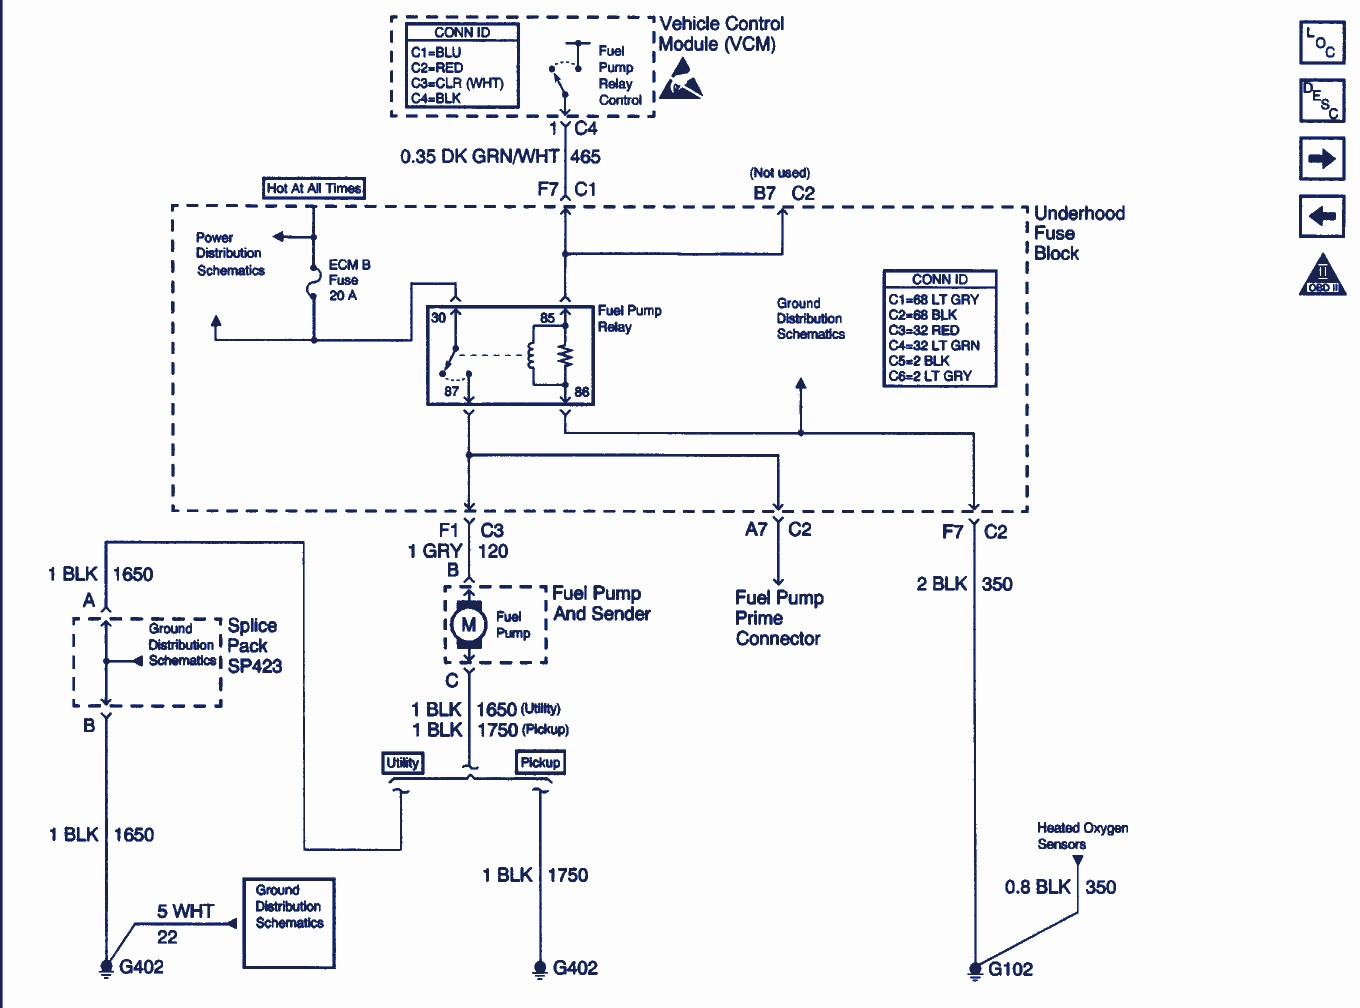 hight resolution of 1990 chevy blazer fuel pump wiring wiring diagram view 1990 chevy s10 blazer fuel pump relay location 1990 chevy blazer fuel pump wiring